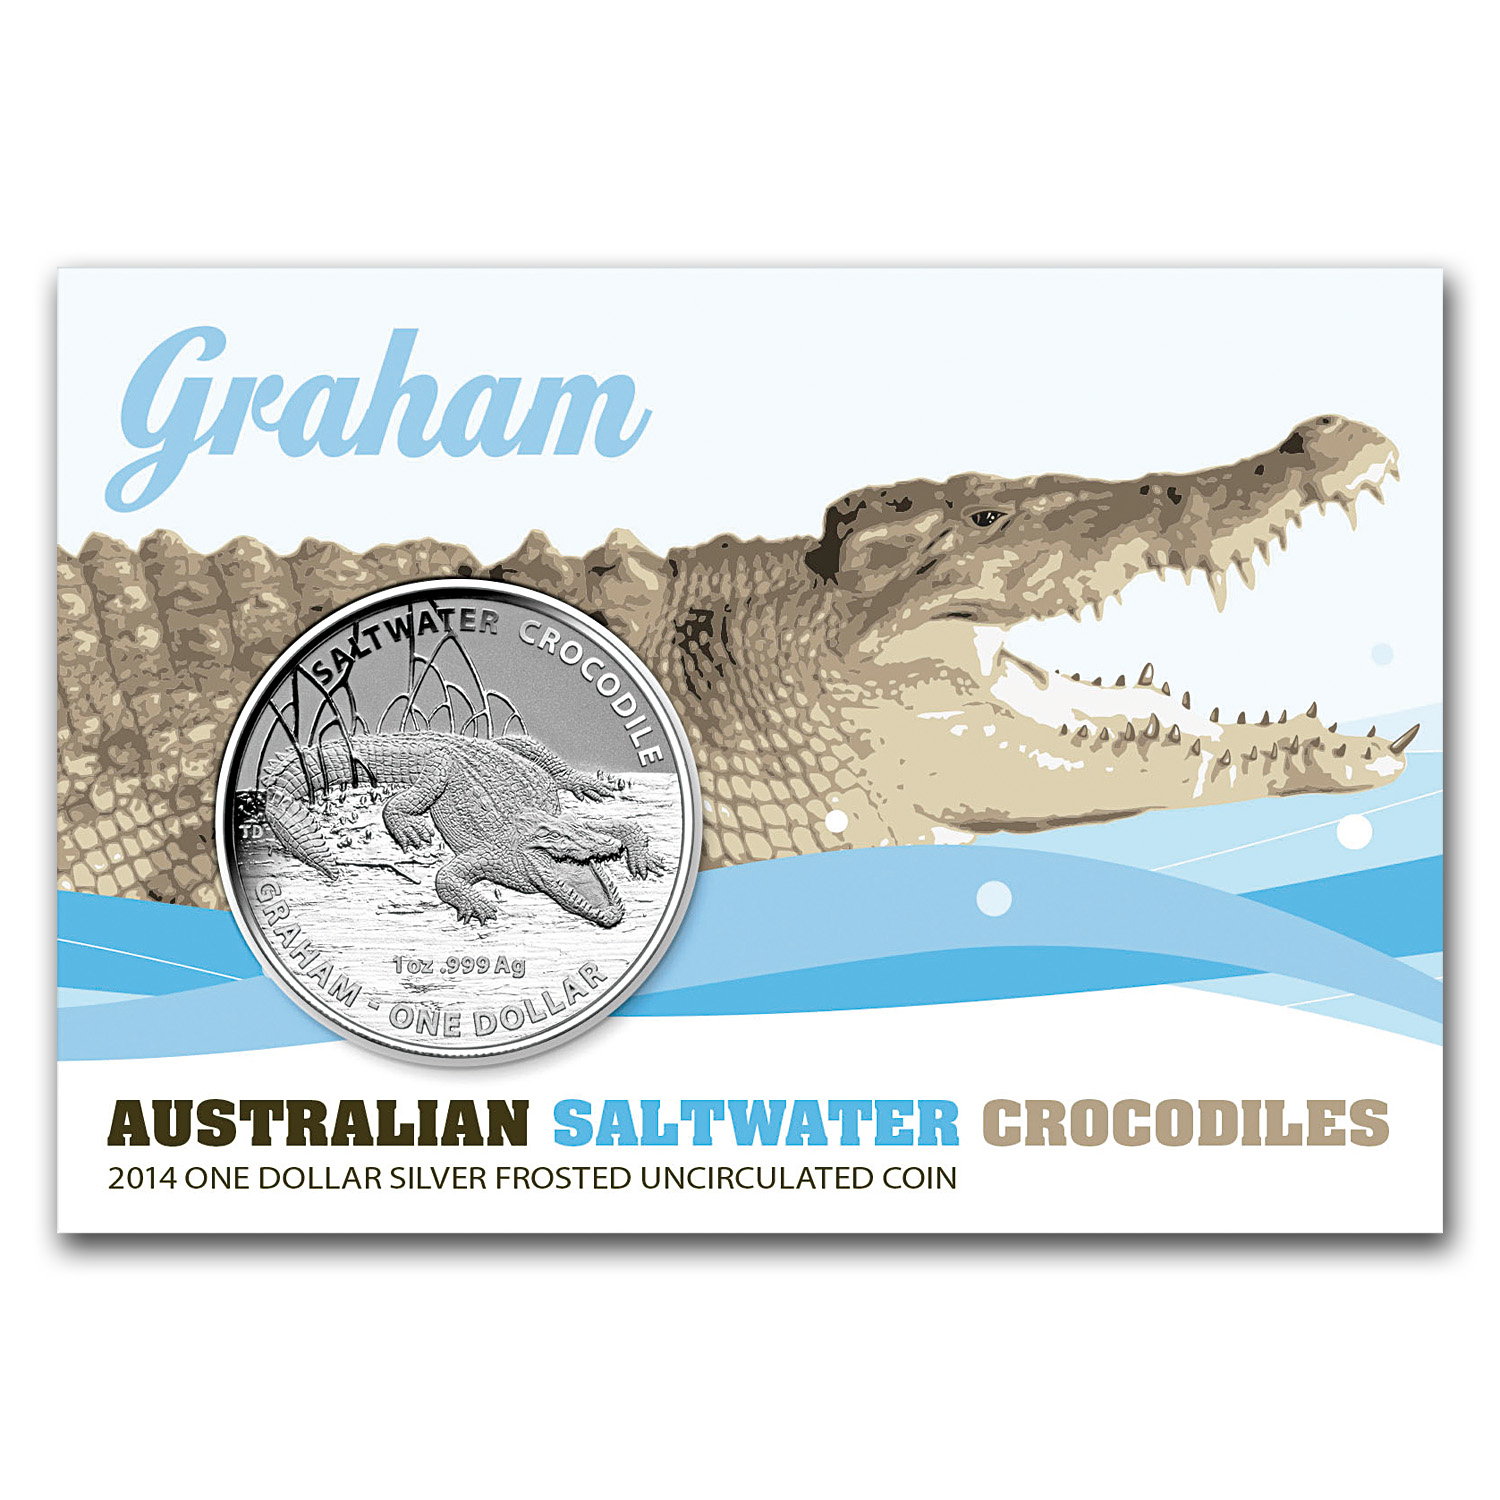 Royal Australian Mint 2014 Silver Saltwater Crocodiles - Graham